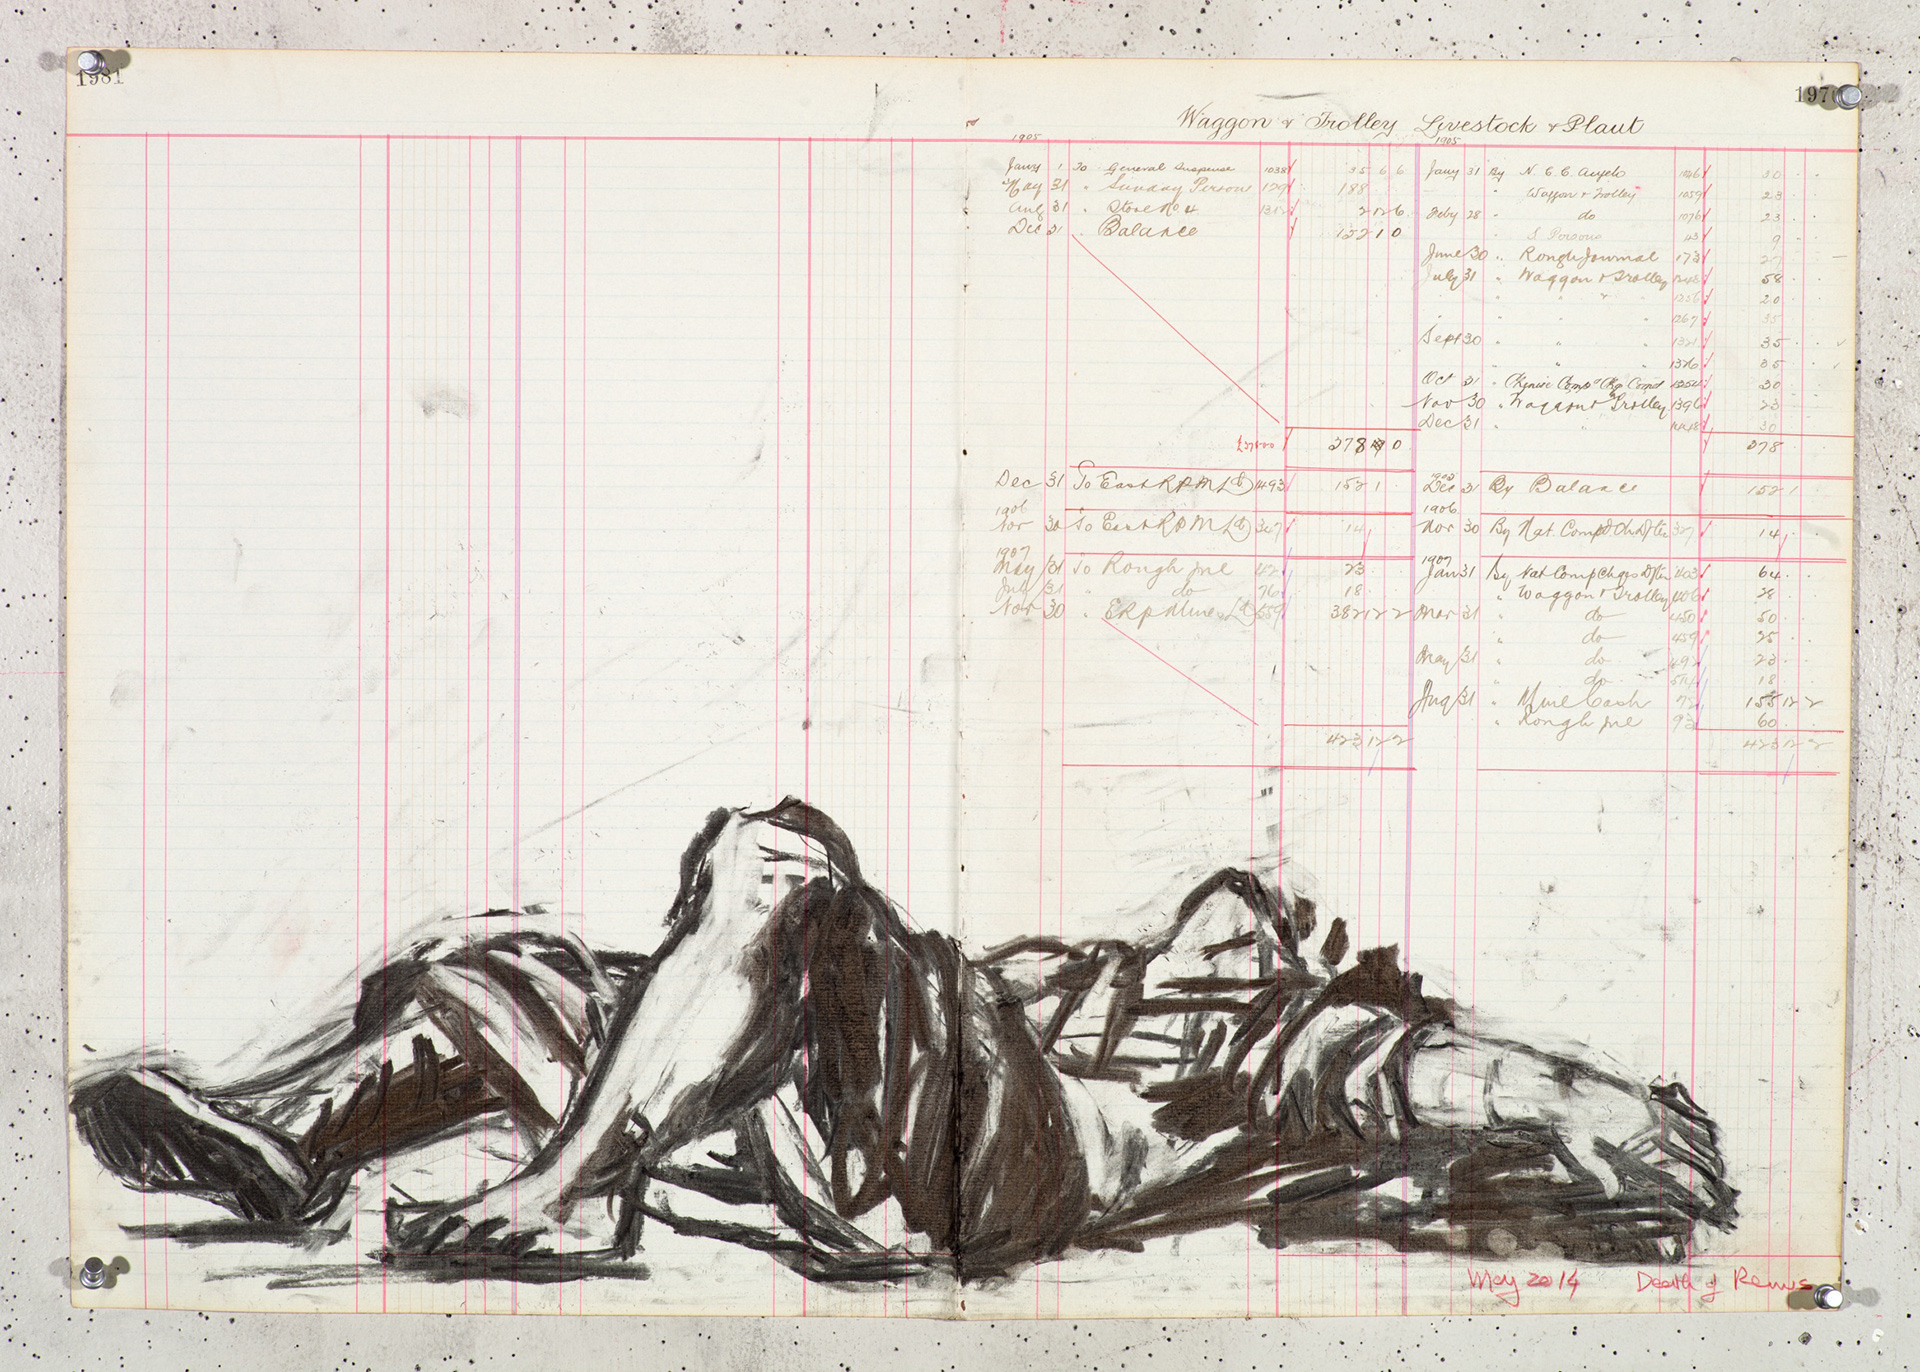 Dead Remus, charcoal on ledger paper, 47 x 66.5 cm, 2014-2016| A Poem That Is Not Our Own| William Kentridge| STIR